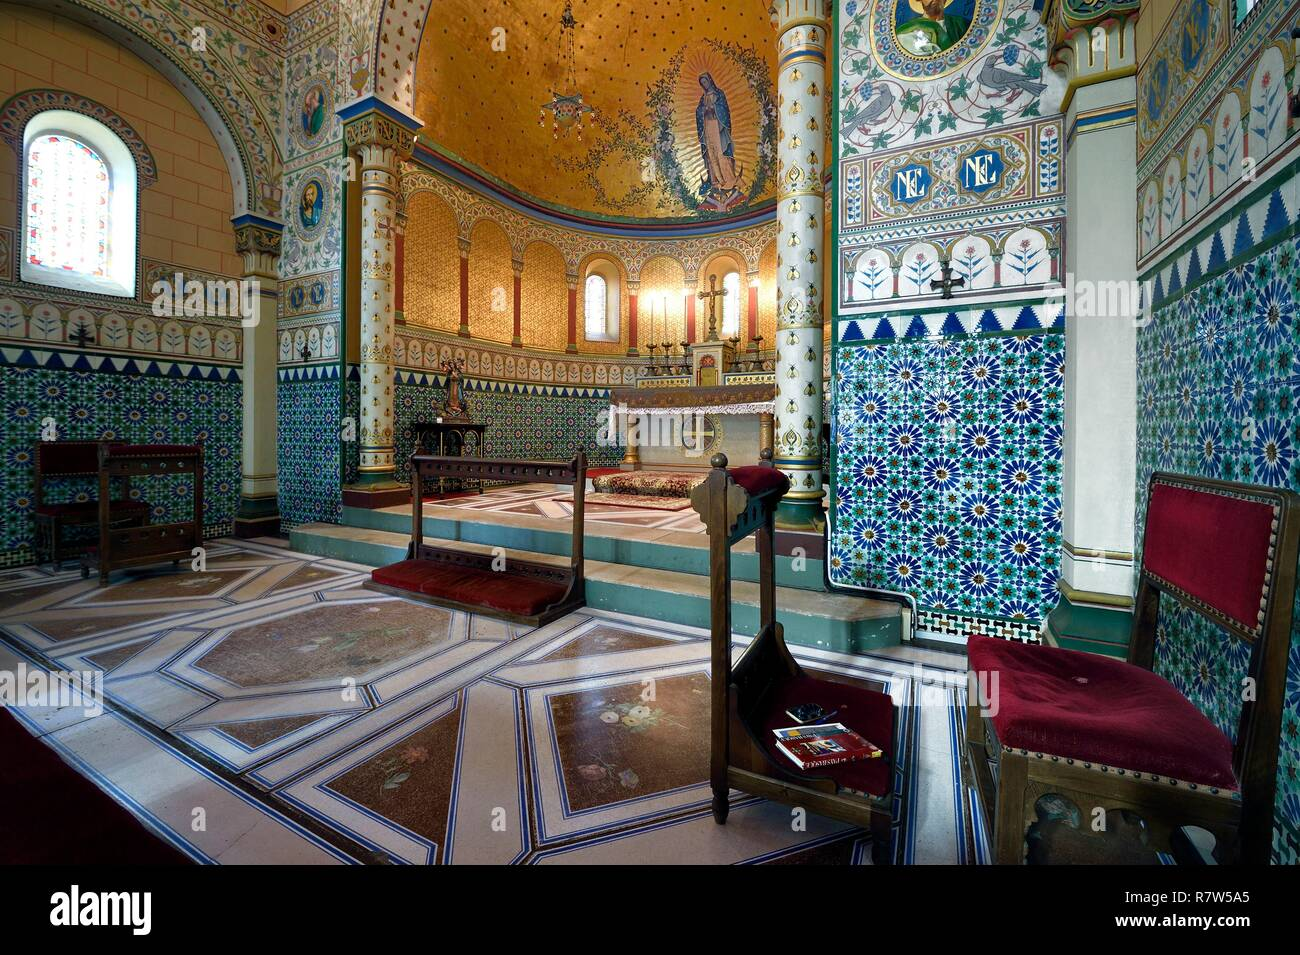 France, Pyrenees Atlantiques, Basque Country, Biarritz, Imperial Chapel built in 1864 by architect Boeswillwald - Stock Image